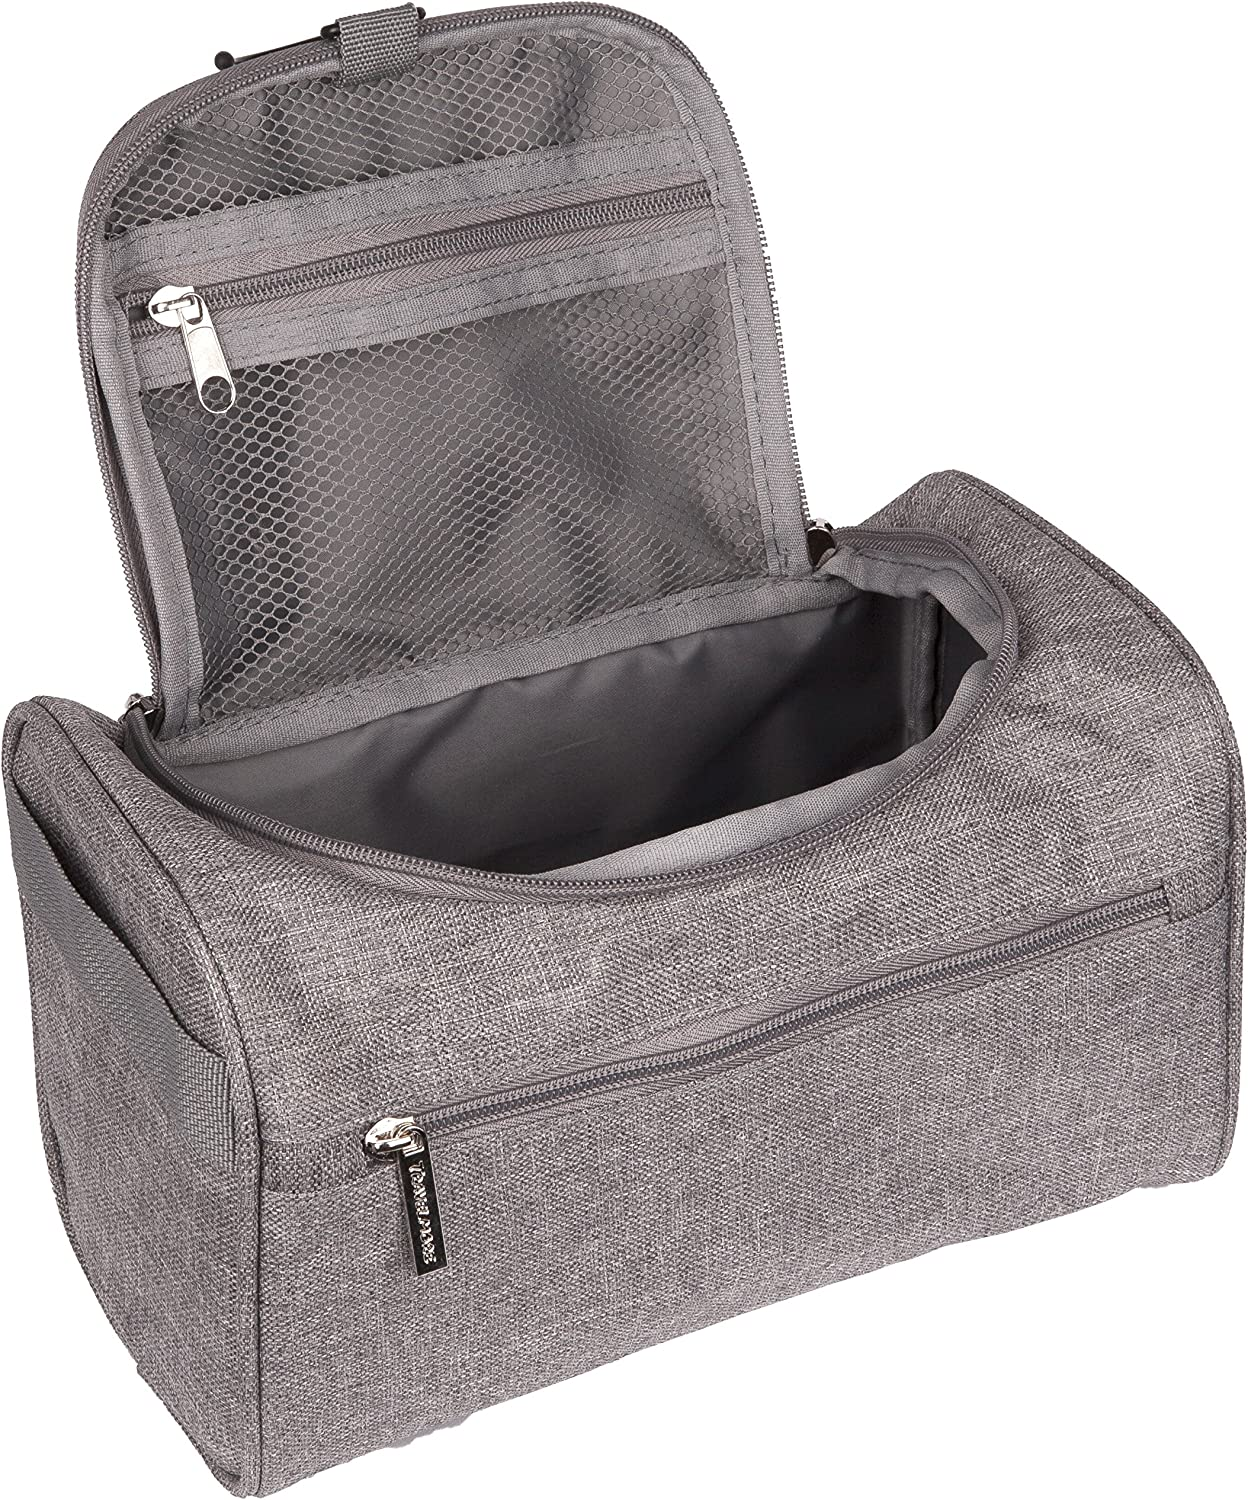 TravelMore Hanging Travel Toiletry Bag Organizer Medicine Bag – Bathroom Hygiene Dopp Kit with Hook for Traveling Accessories Toiletries Bathroom Shaving Makeup for Men and Woman – Gray